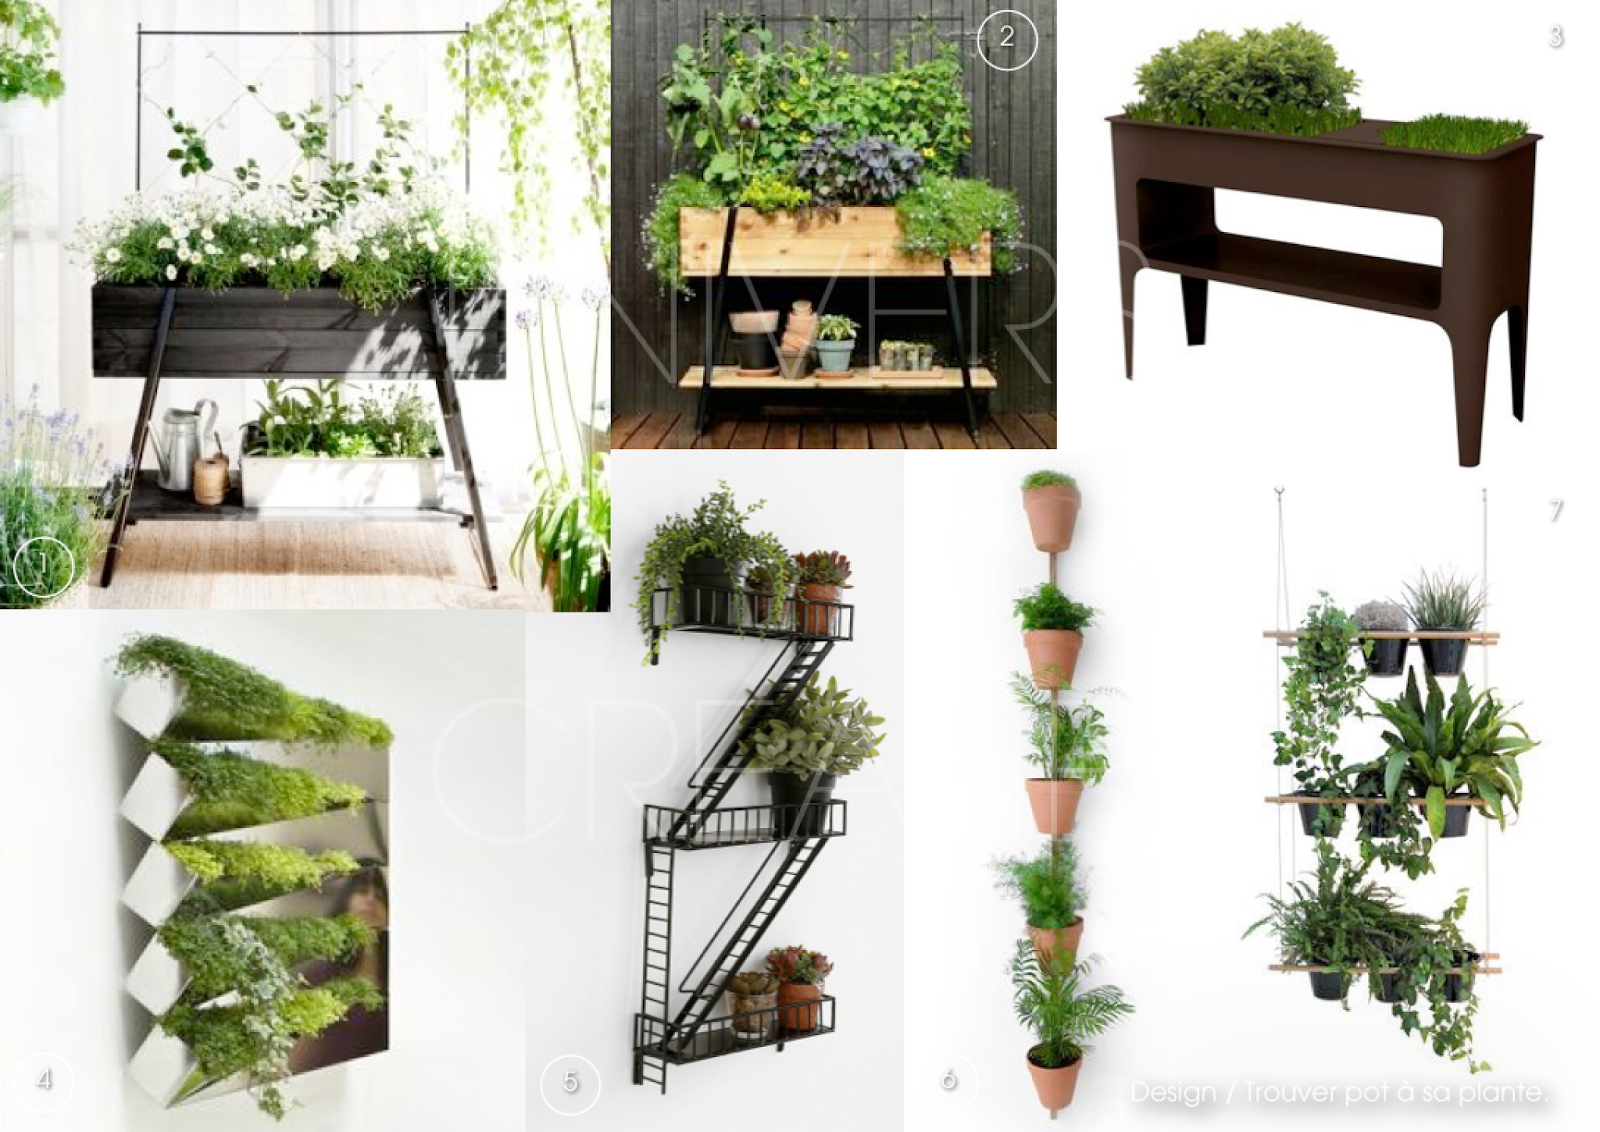 Univers creatifs design trouver pot sa plante for Porte plante mural interieur